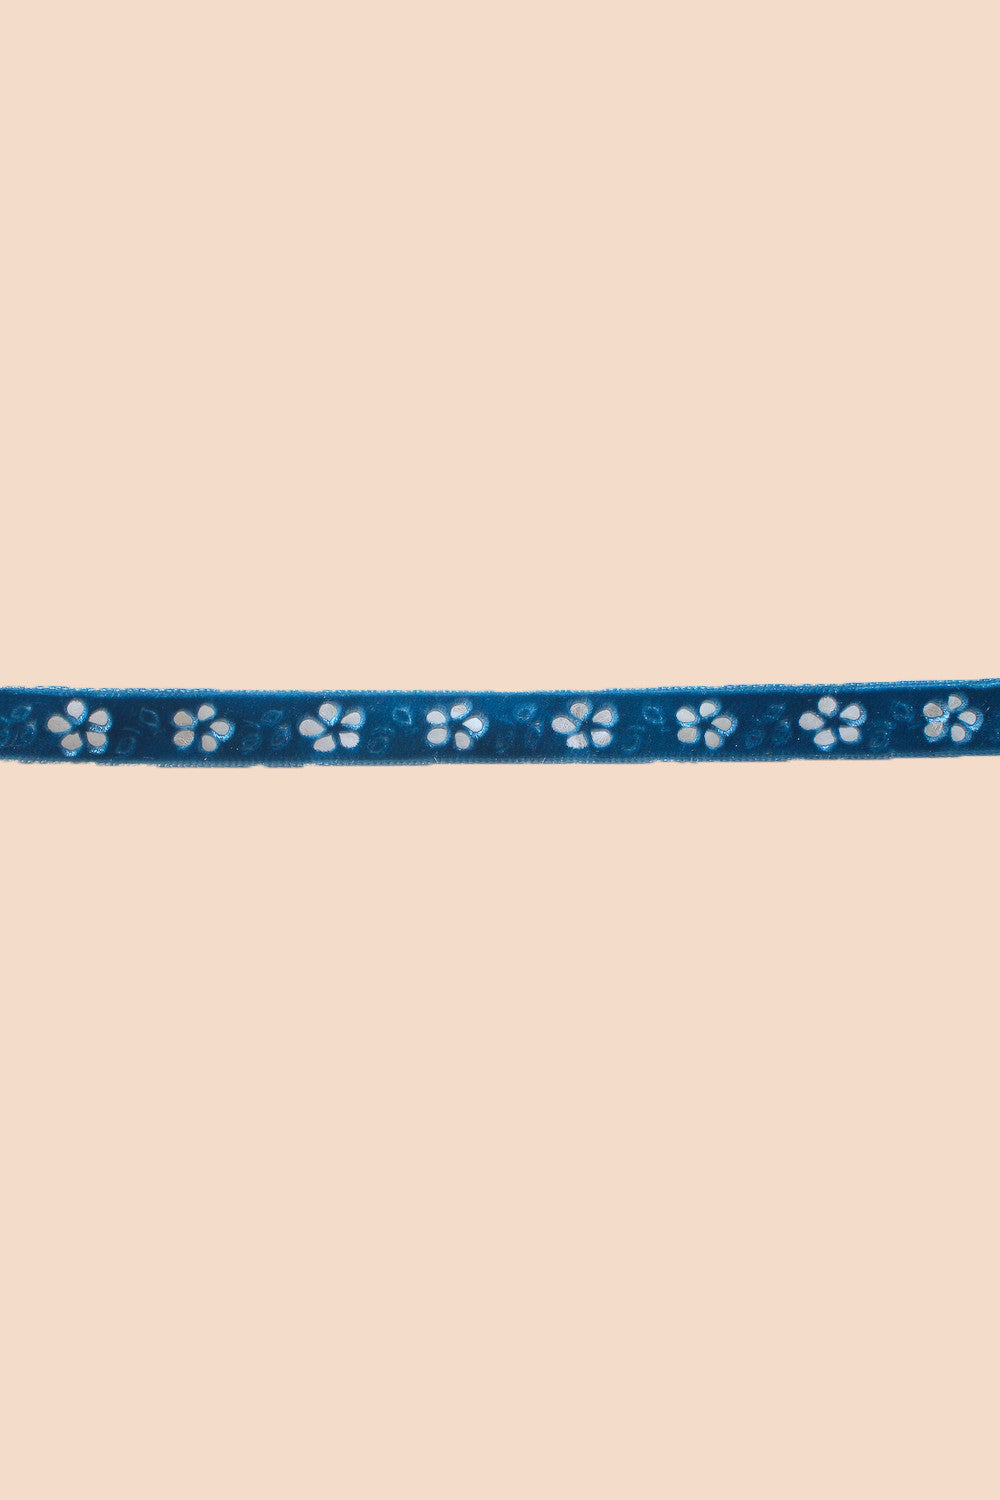 Flower Power Choker in Ocean